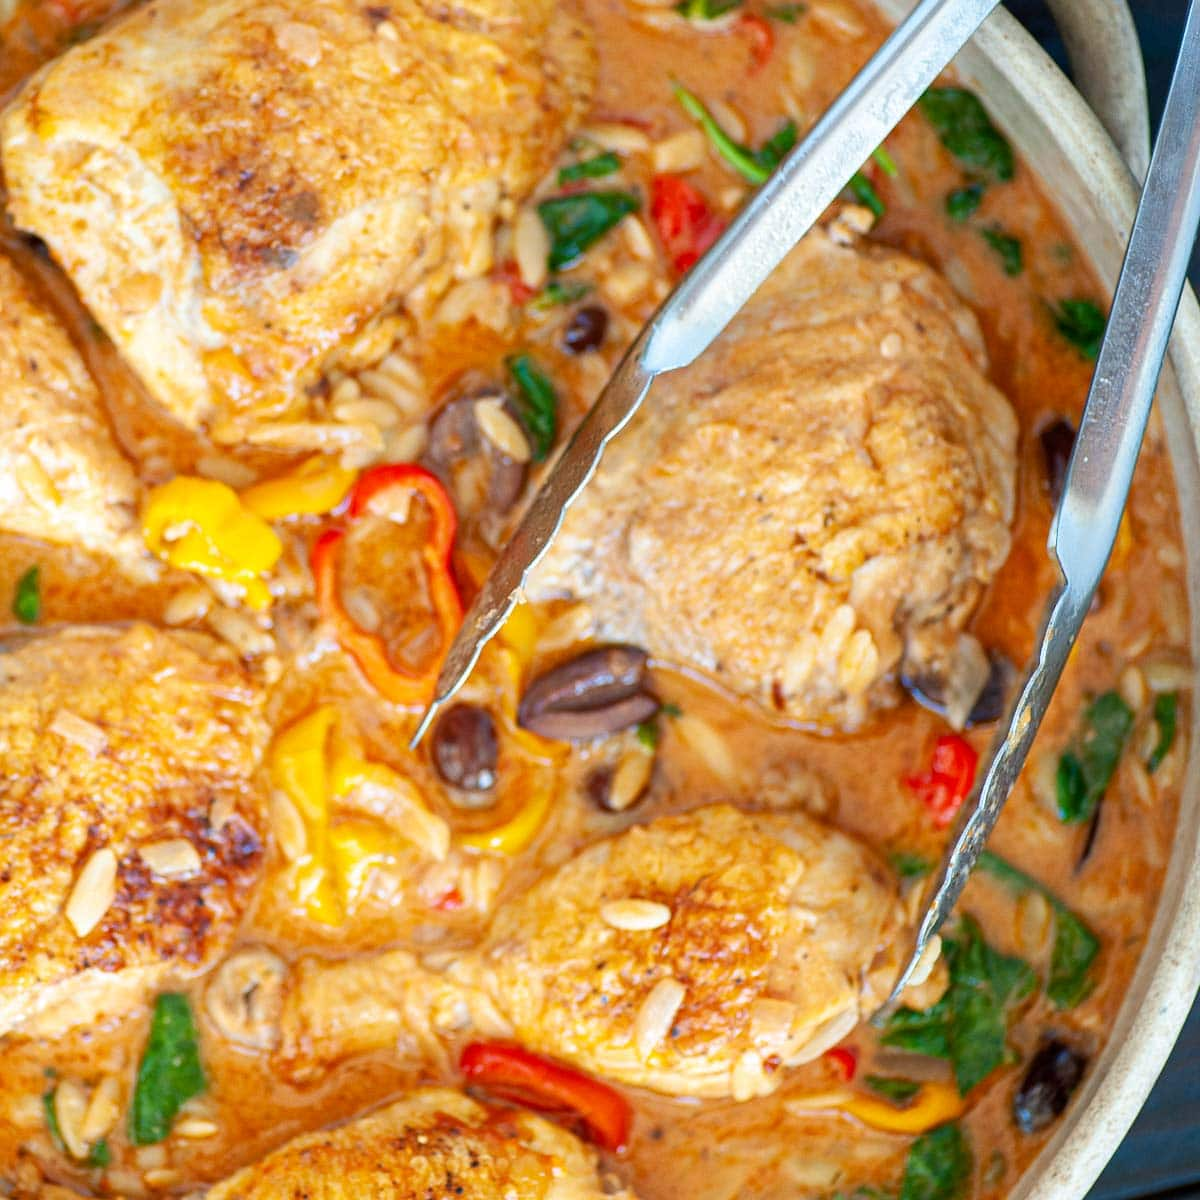 Overhead view of chicken with tongs.